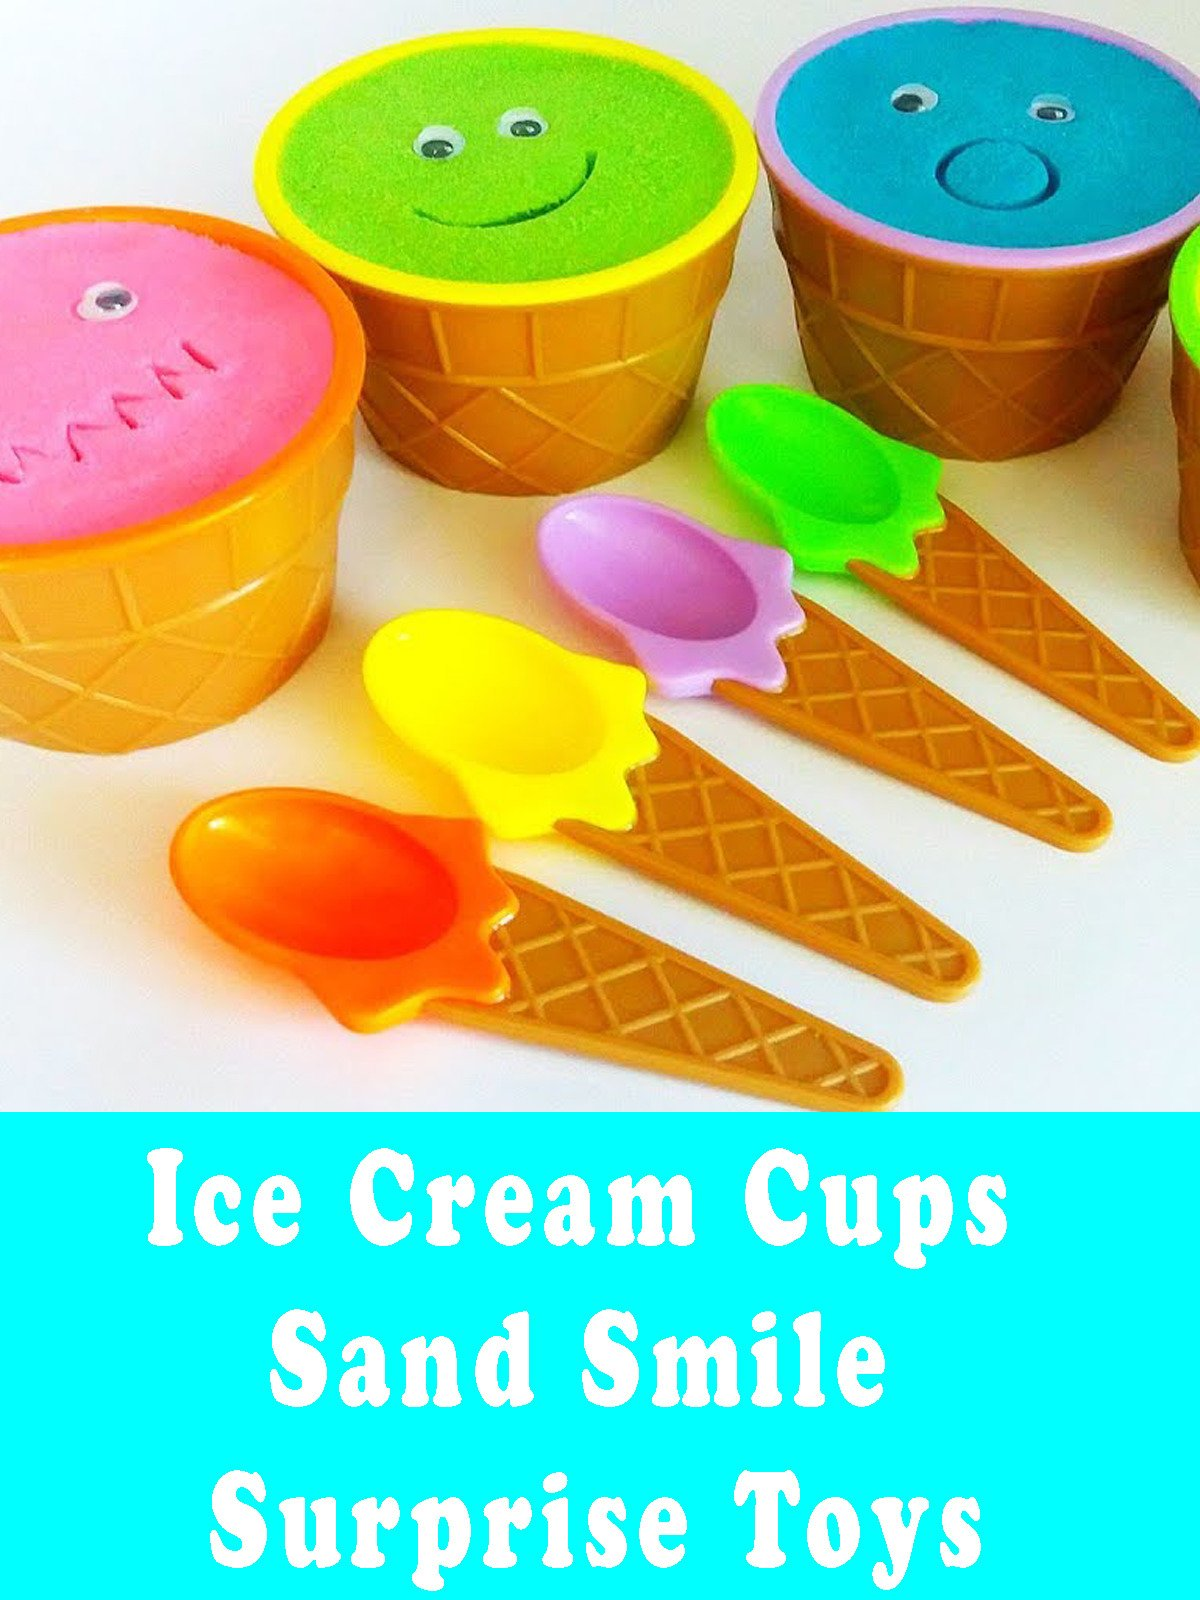 Ice Cream Cups Sand Smile Surprise Toys